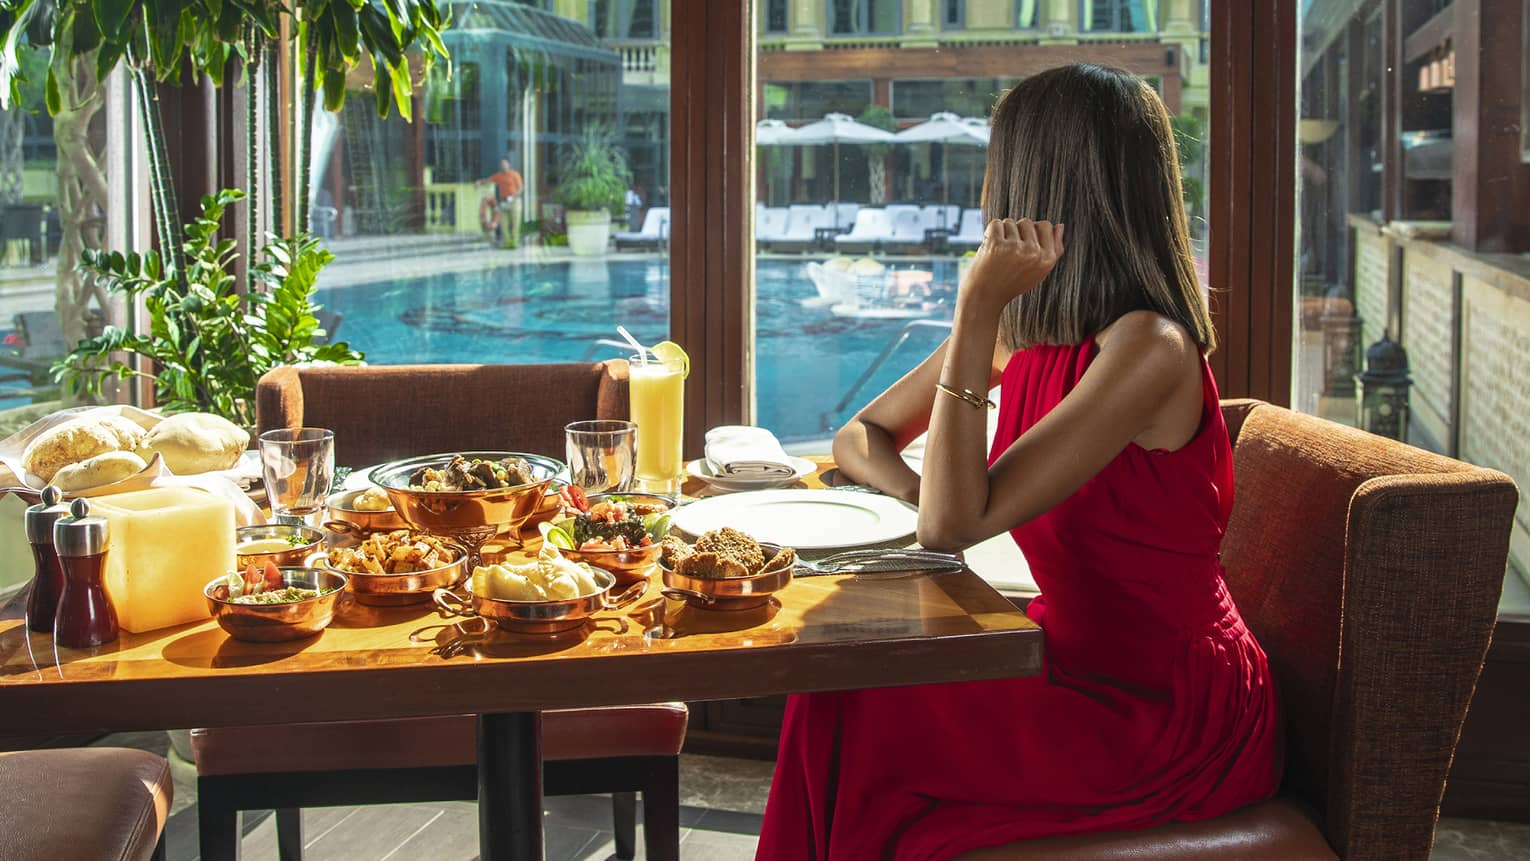 A woman in a long red dress sits at a table with a variety of food next to a long window overlooking a pool